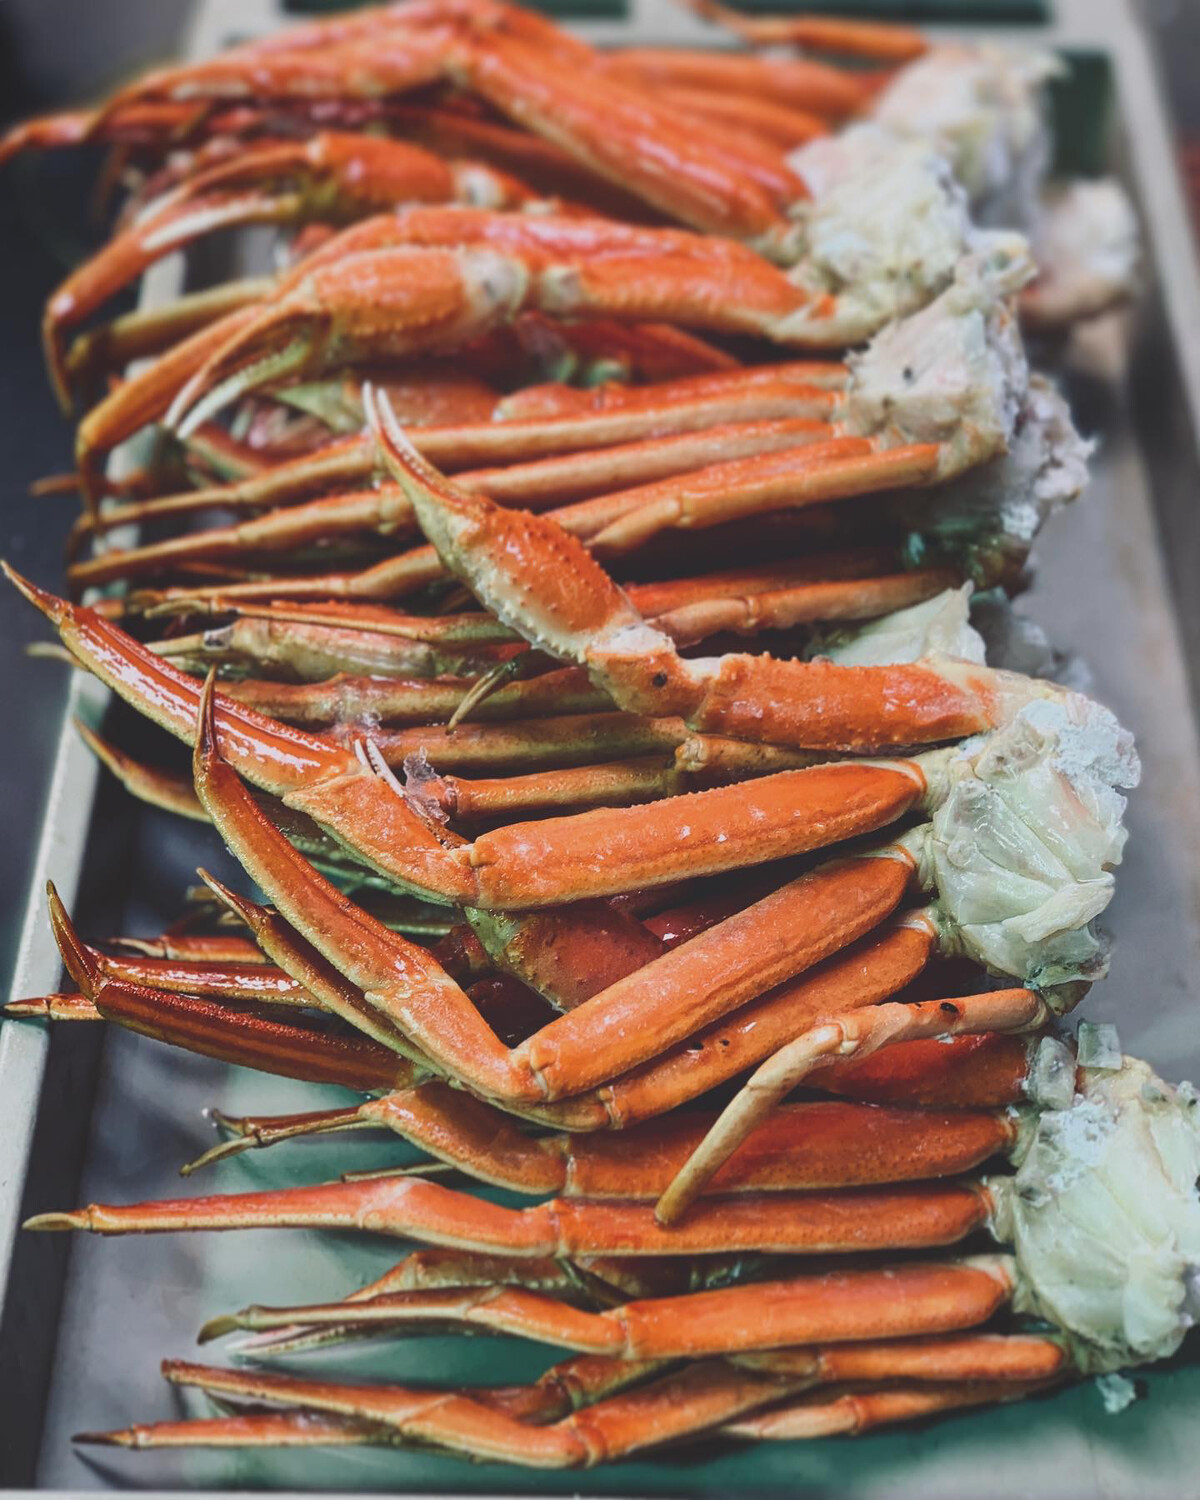 SNOW CRAB 12-14oz. CLUSTERS 20LB POUND CASE